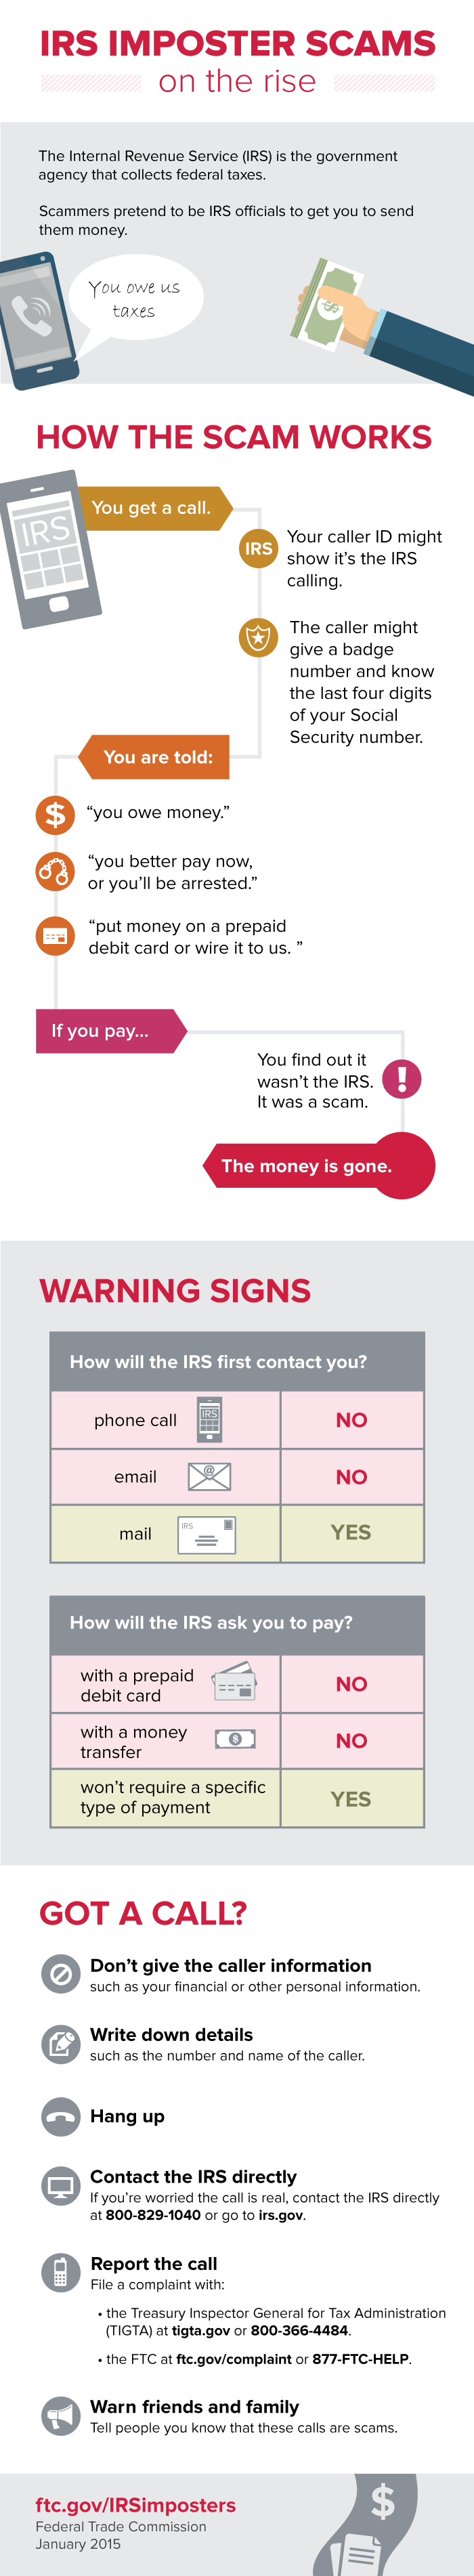 Attractive IRS Imposter Scams